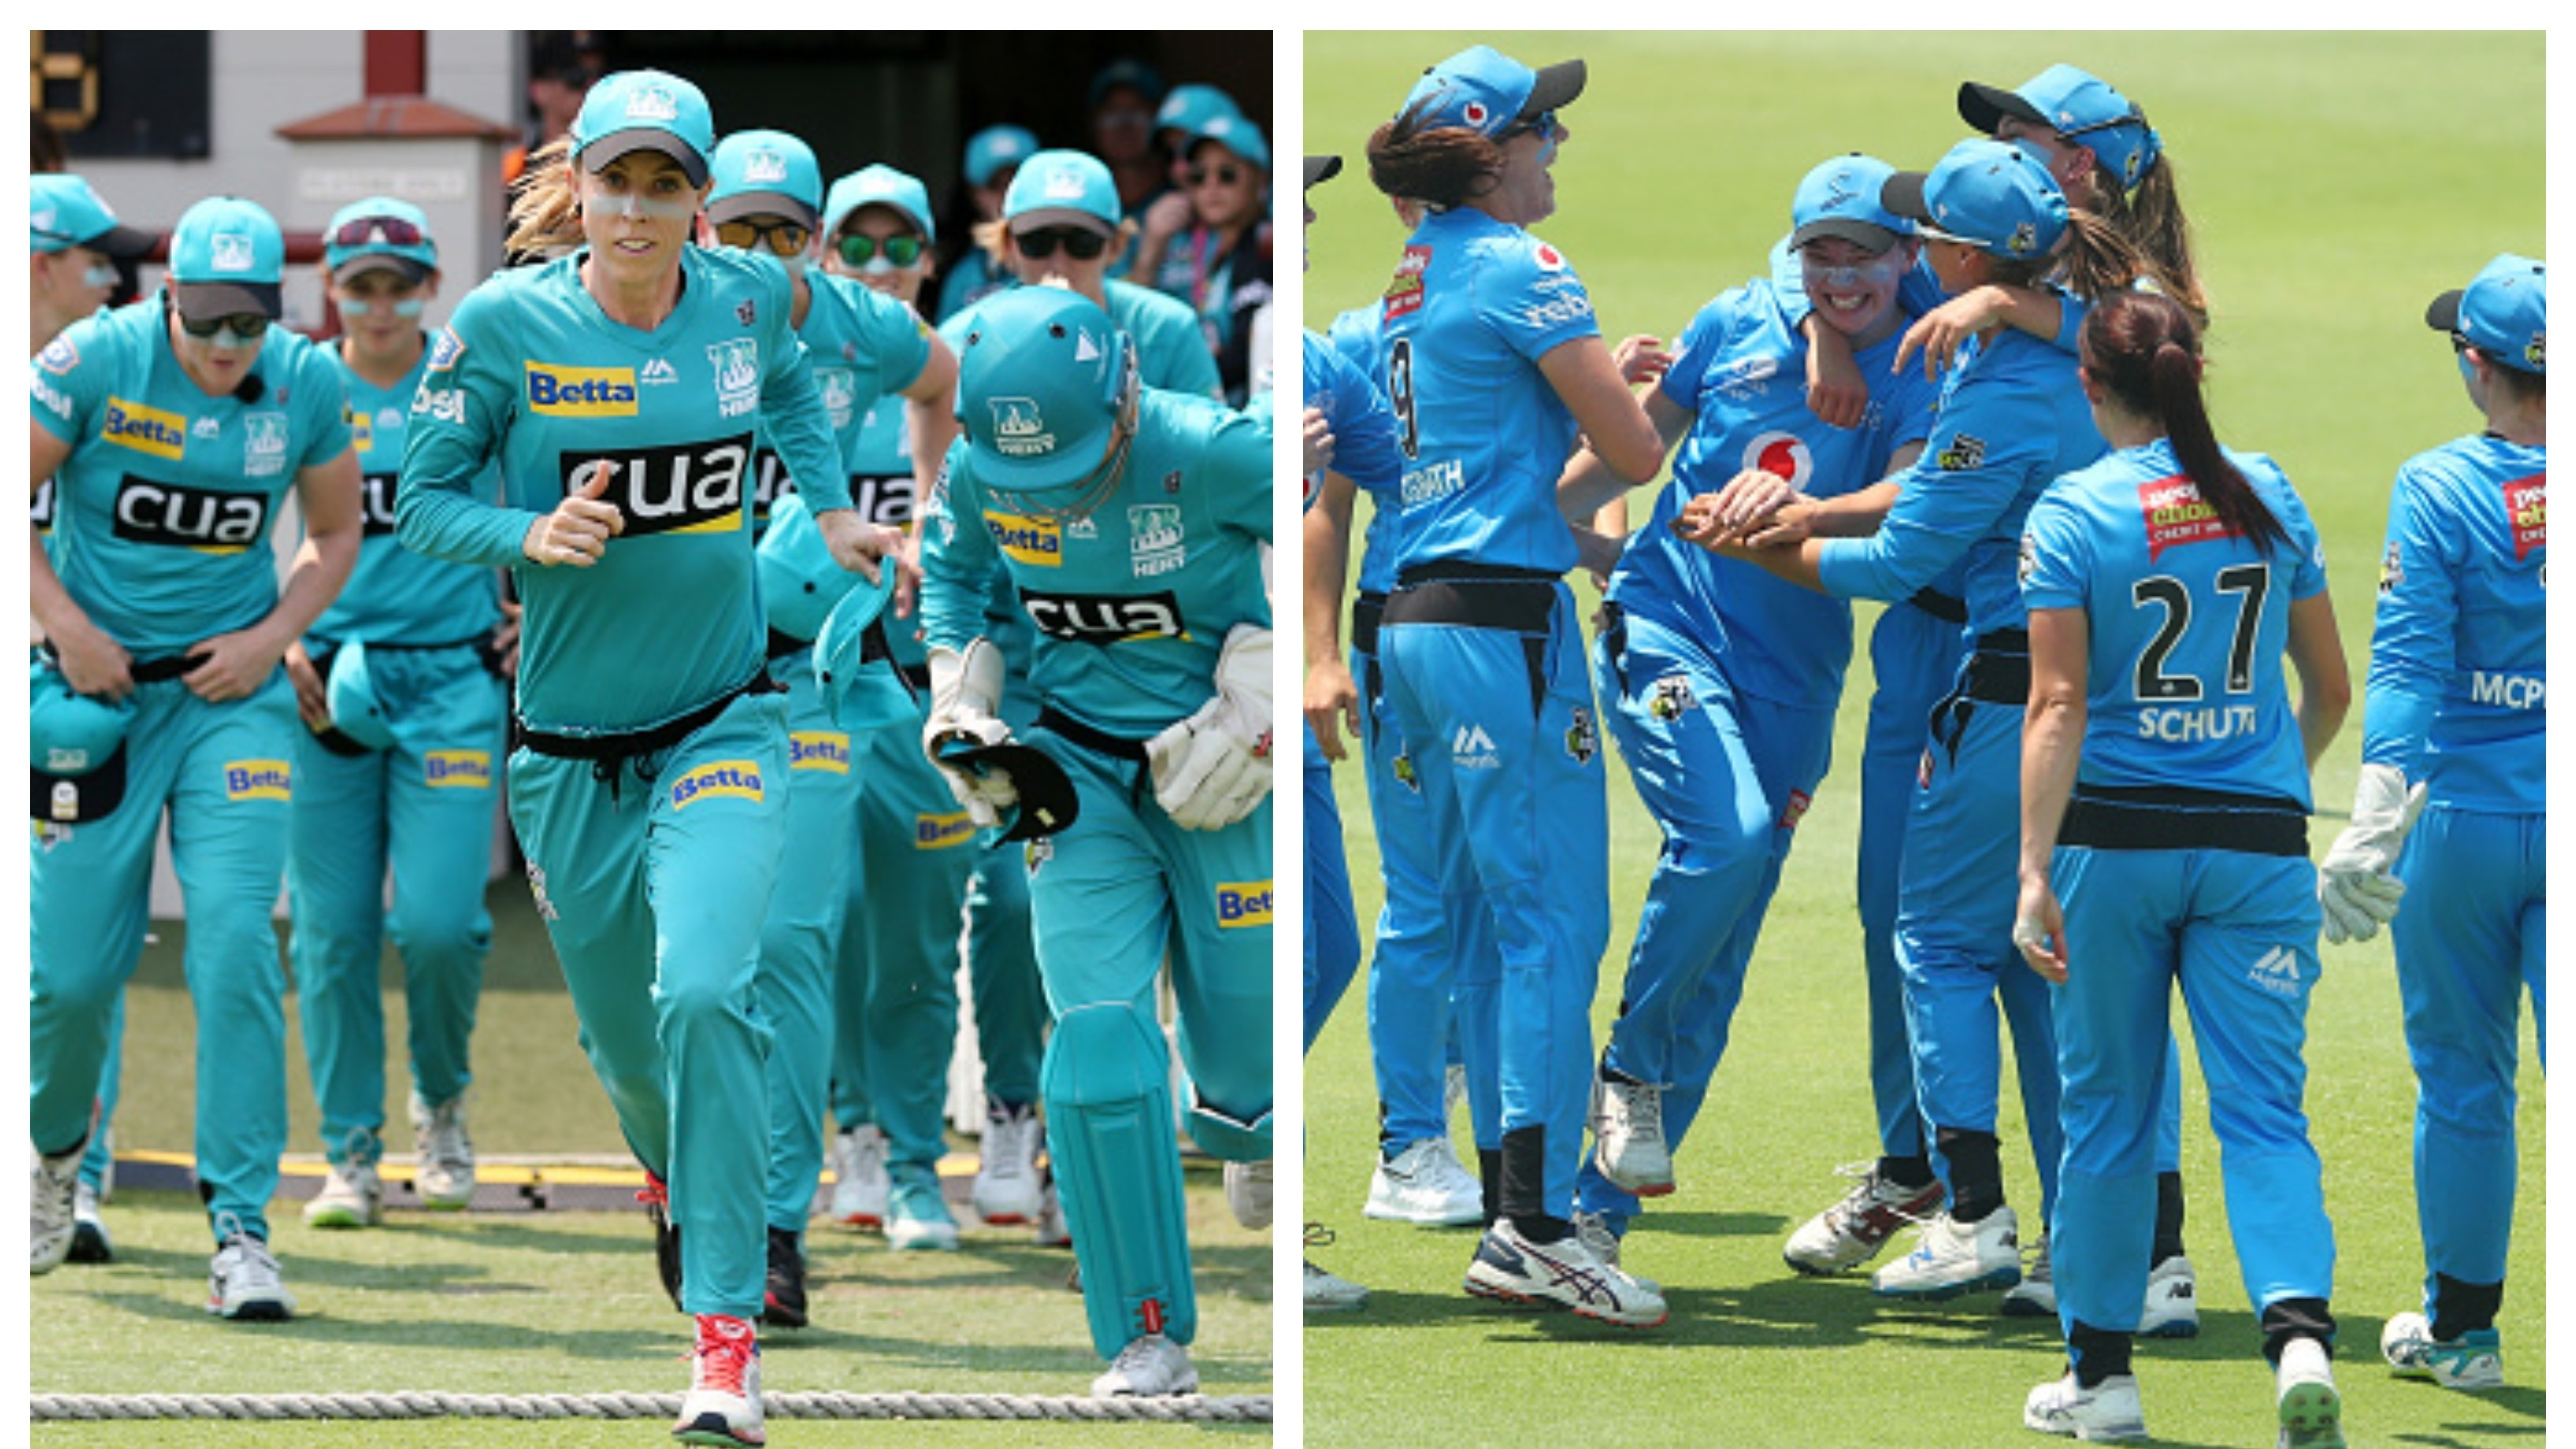 WBBL 2019: Strikers, Heat reach Women's Big Bash League final after big wins in the semis